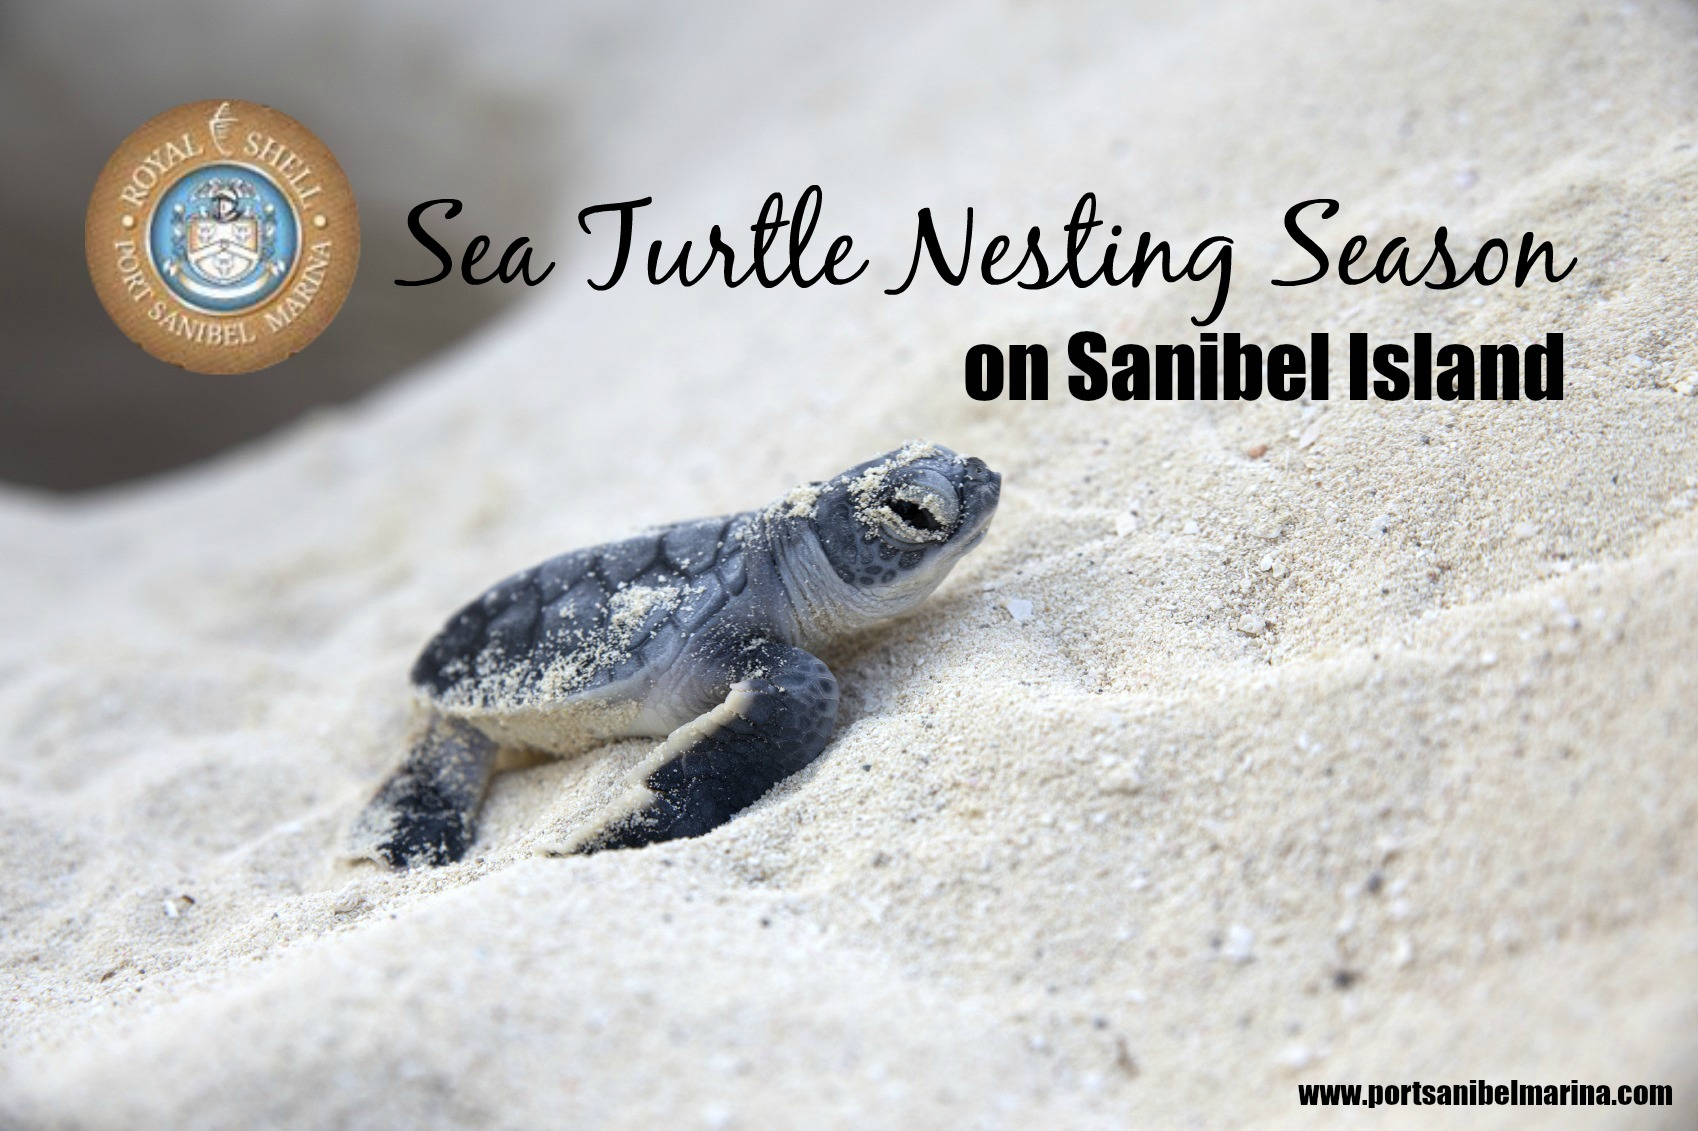 Each sea turtle nest contains more than 100 eggs and just one in 1,000 hatchlings make it to adulthood.